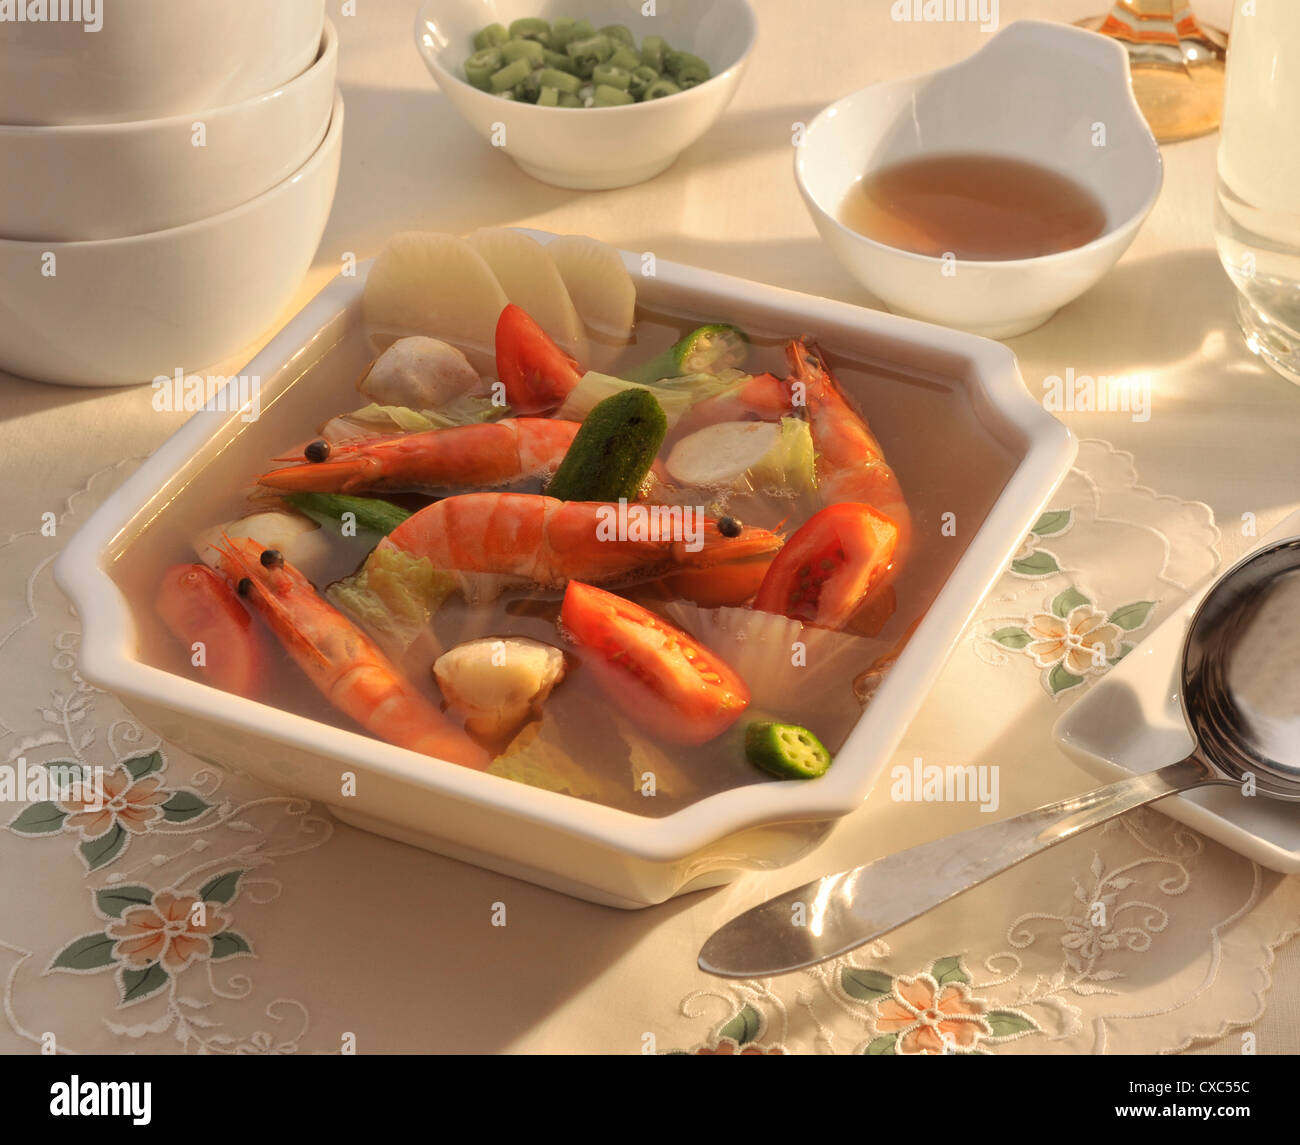 Sinigang, a popular filipino sour soup, Philippines, Southeast Asia, Asia - Stock Image